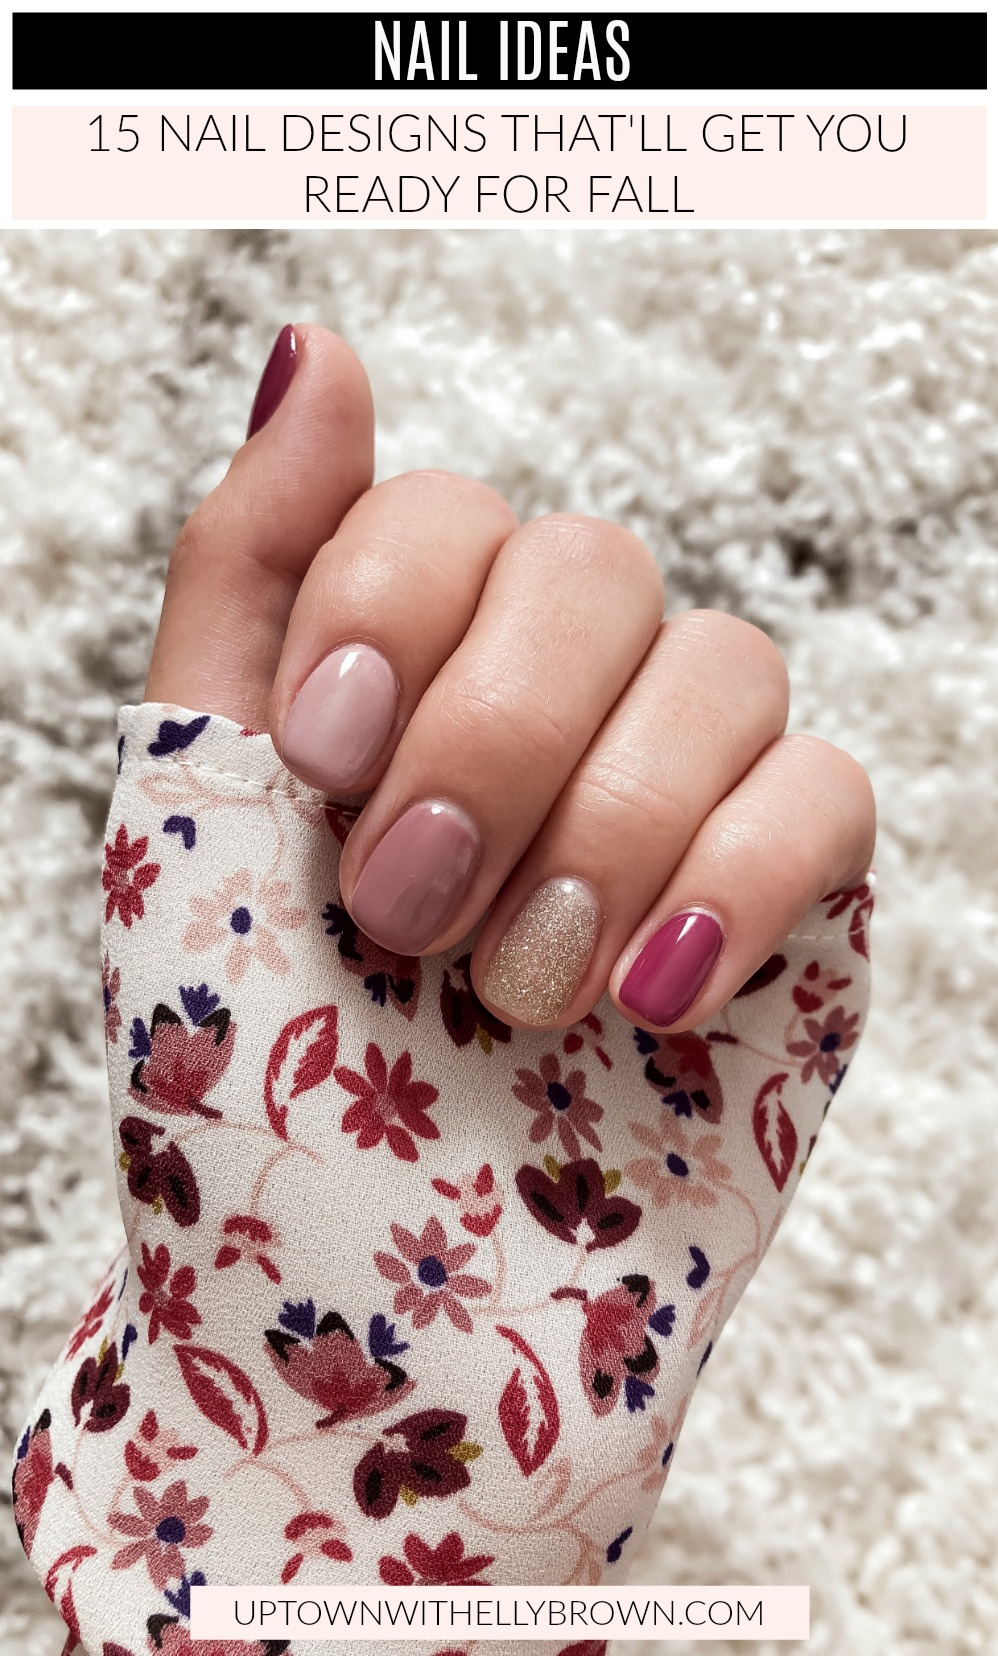 Houston lifestyle blogger Uptown with Elly Brown rounds up the most inspiring Fall Nail Designs that will have you running to get your nails done.